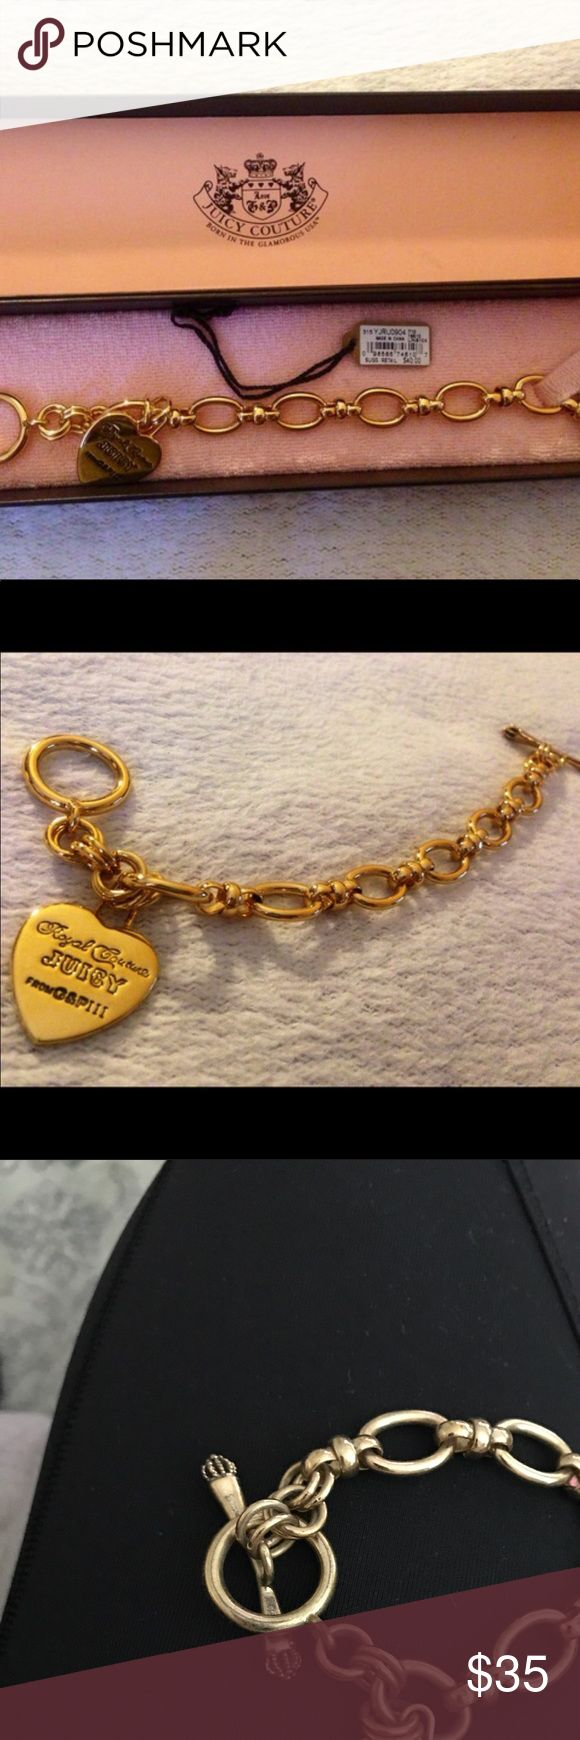 "AUTHENTIC- JUICY COUTURE 8"" •Gold Chain with Heart 8"" •Gold Chain with Heart •Juicy Couture engraved on one side •Royal Couture Juicy from G&P III engraved on one side •Retired G&P piece (Collectable) • Juicy Couture Jewelry Bracelets"